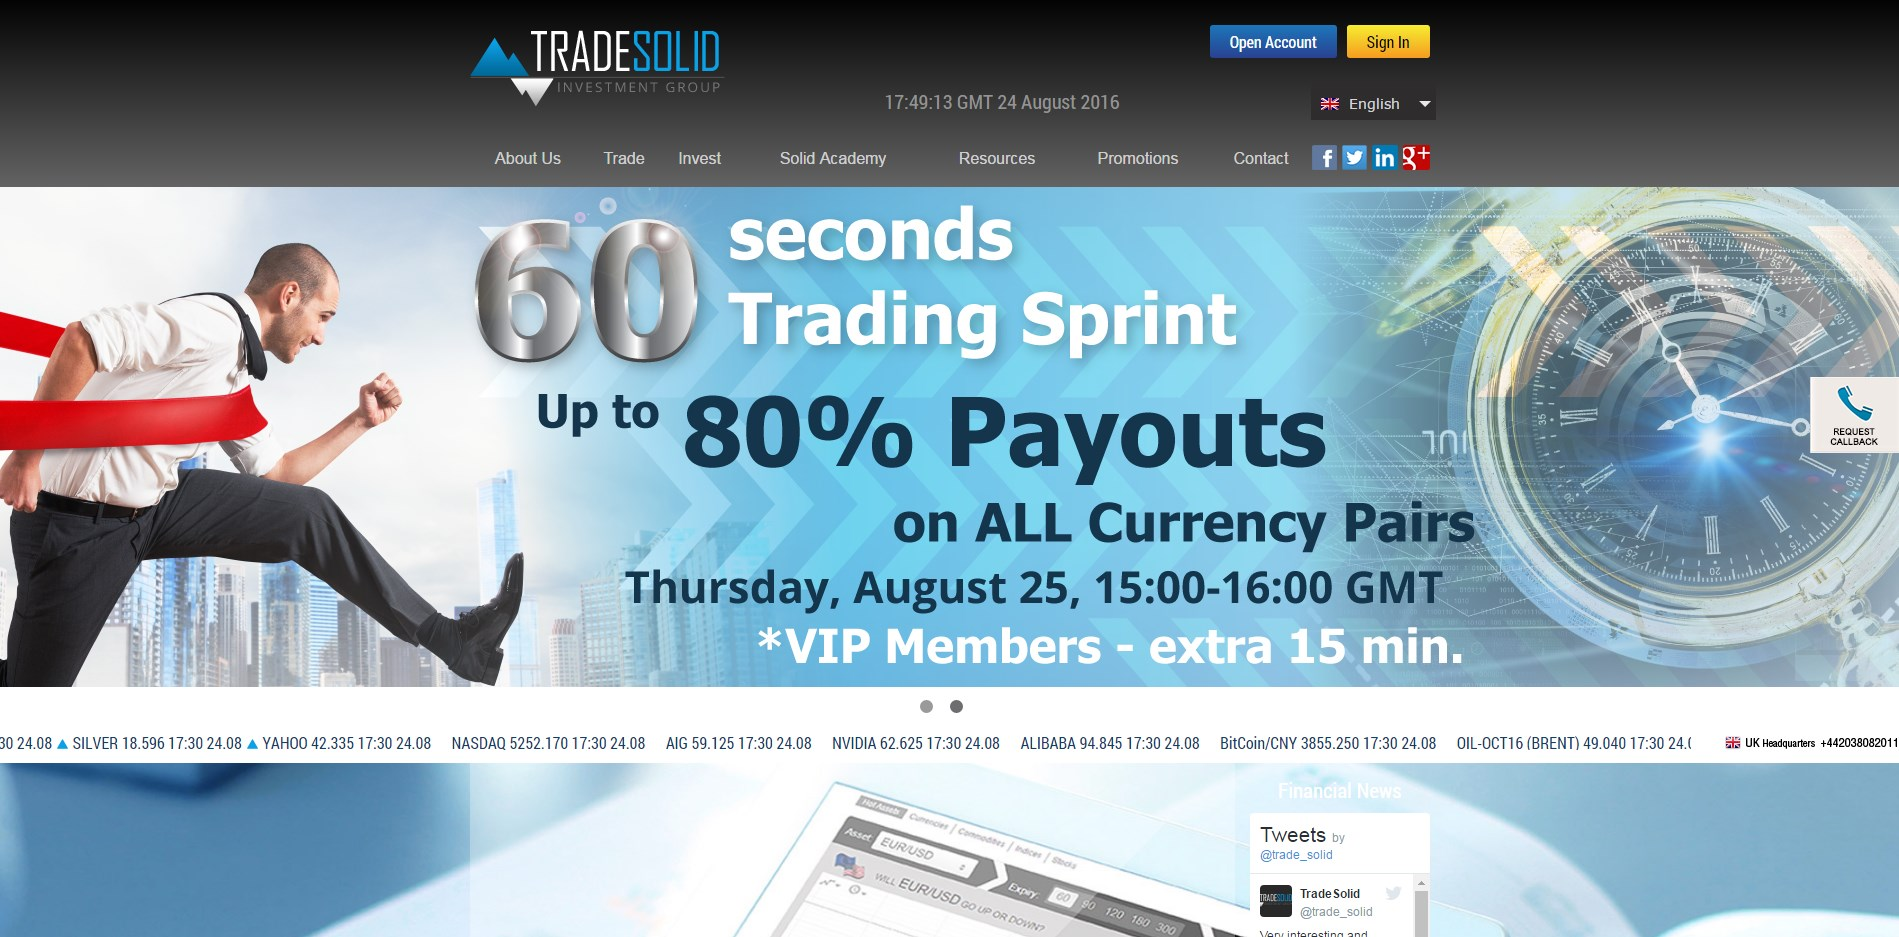 Foreign currency trading news